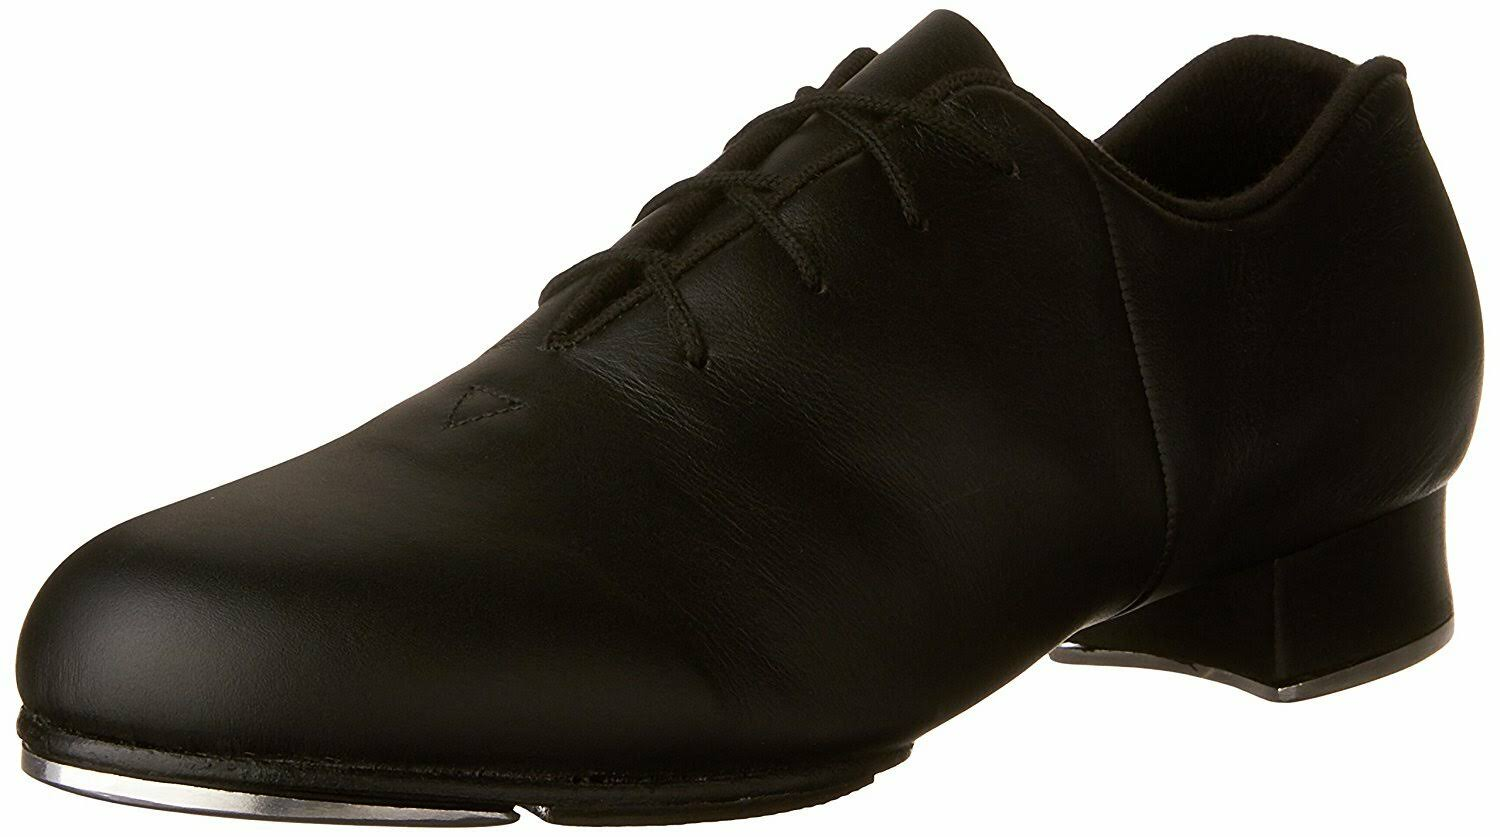 Bloch Women's Tap-Flex Tap Shoe - Black, 8 US